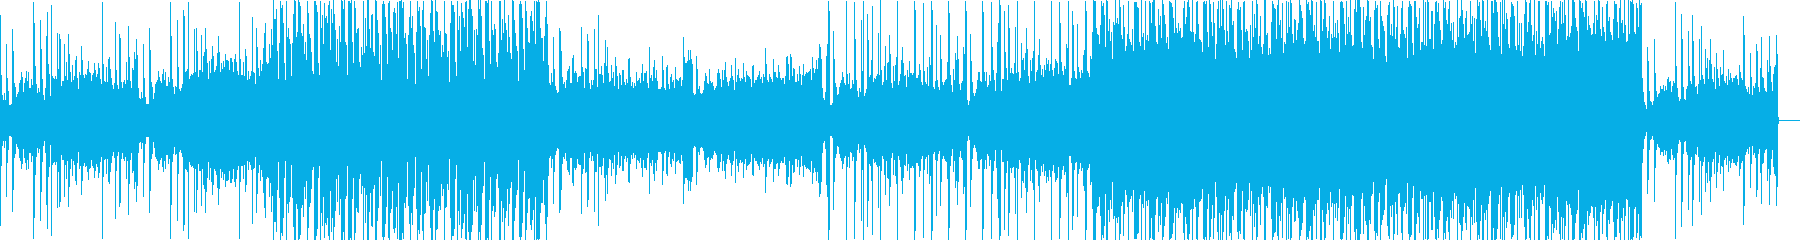 Electro, fashionable, mature's reproduced waveform